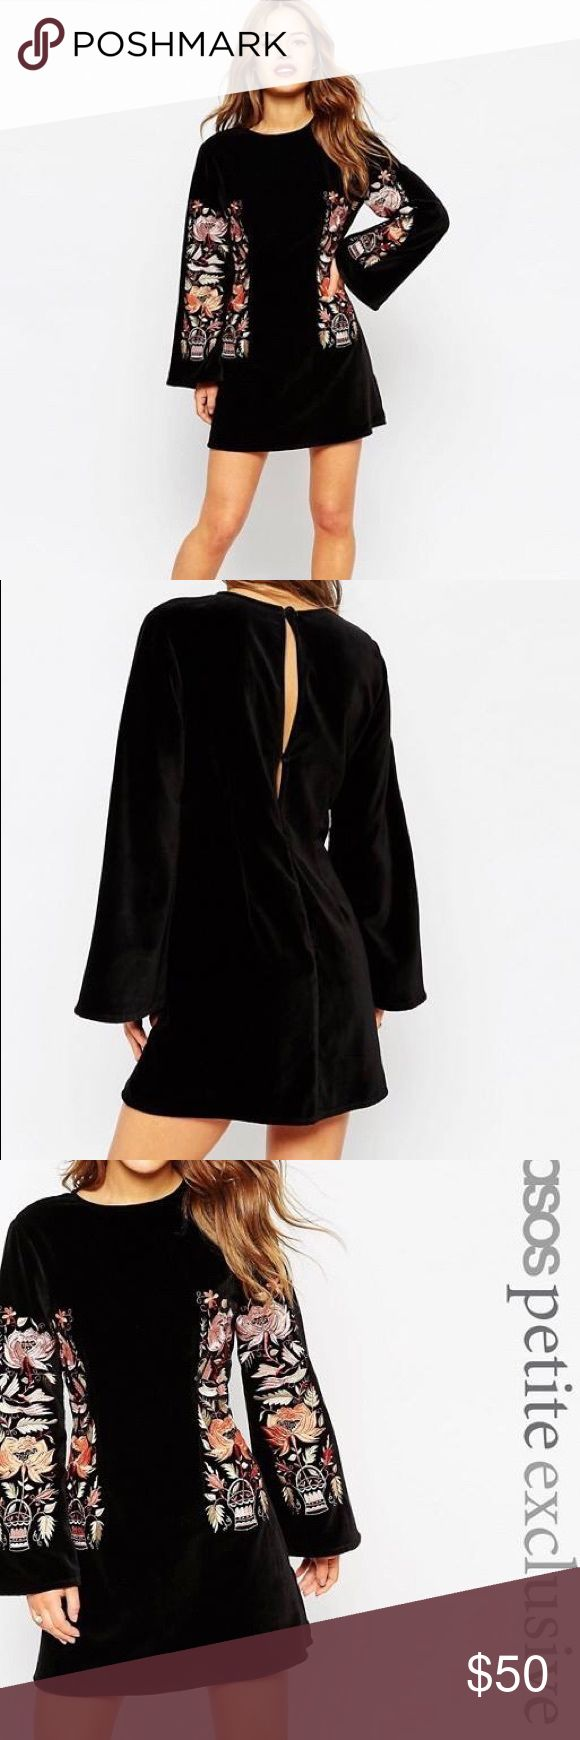 *NWT* ASOS Premium black velvet embroidered dress Premium velvet bell sleeve shift dress with open slit details on back. Beautiful embroidery detail. New with tags, size 4. ASOS Petite Dresses Long Sleeve